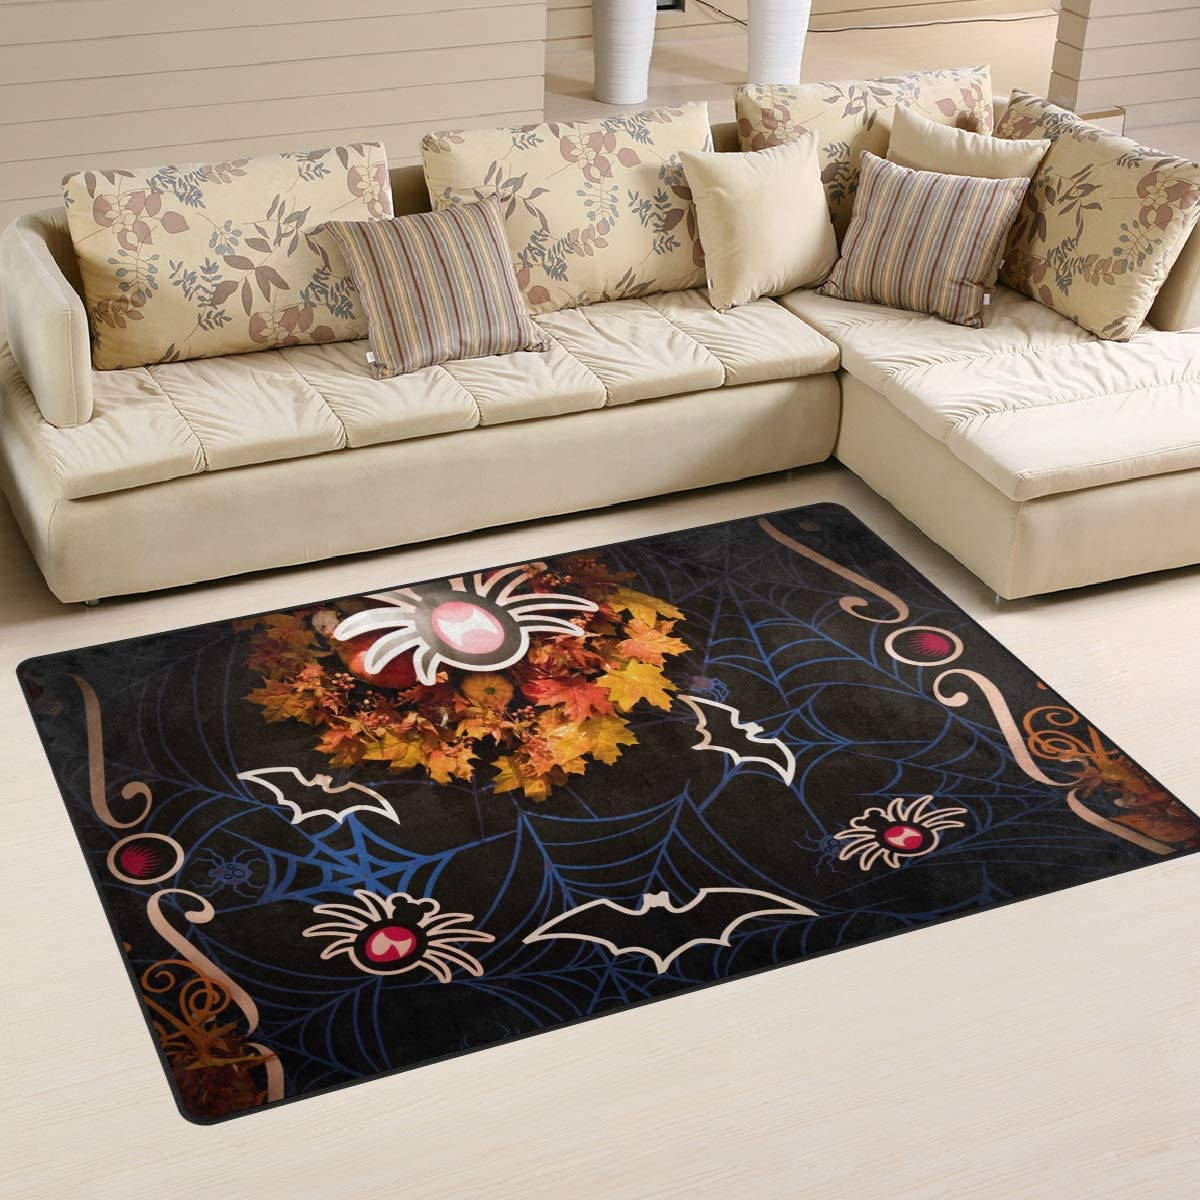 DEYYA Home Decor Non-Slip Area Rugs Pad Cover 60 x 39 Inch